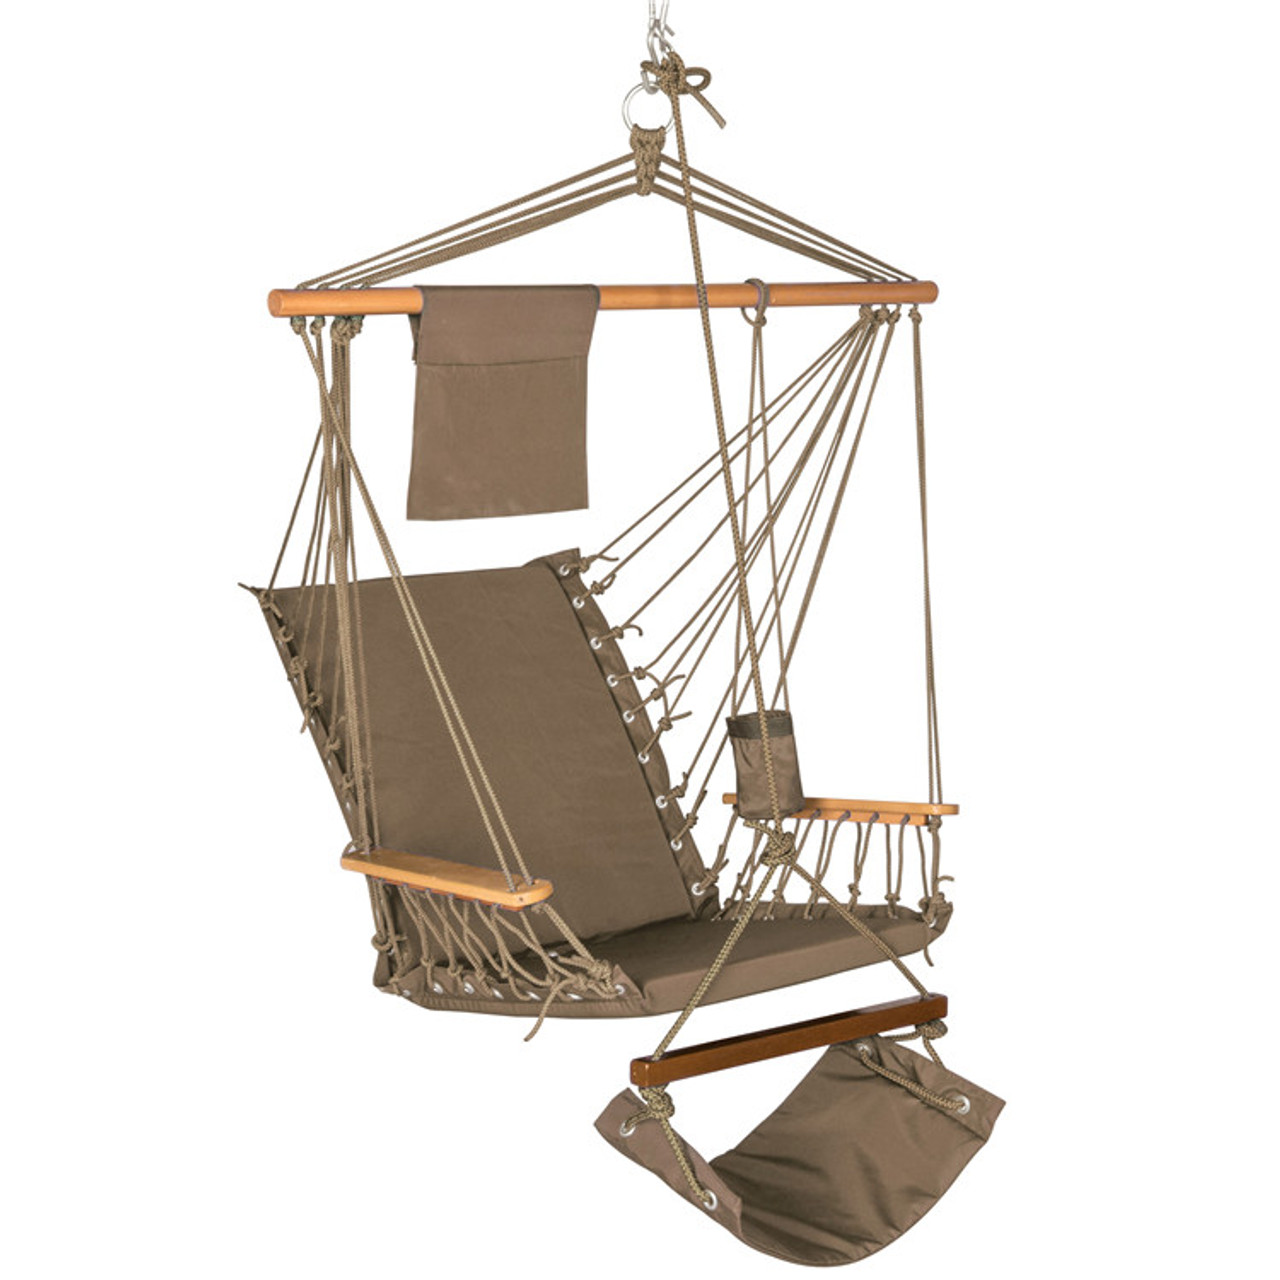 hanging hammock swing lounger chair with cup capacity 350 lbs tan